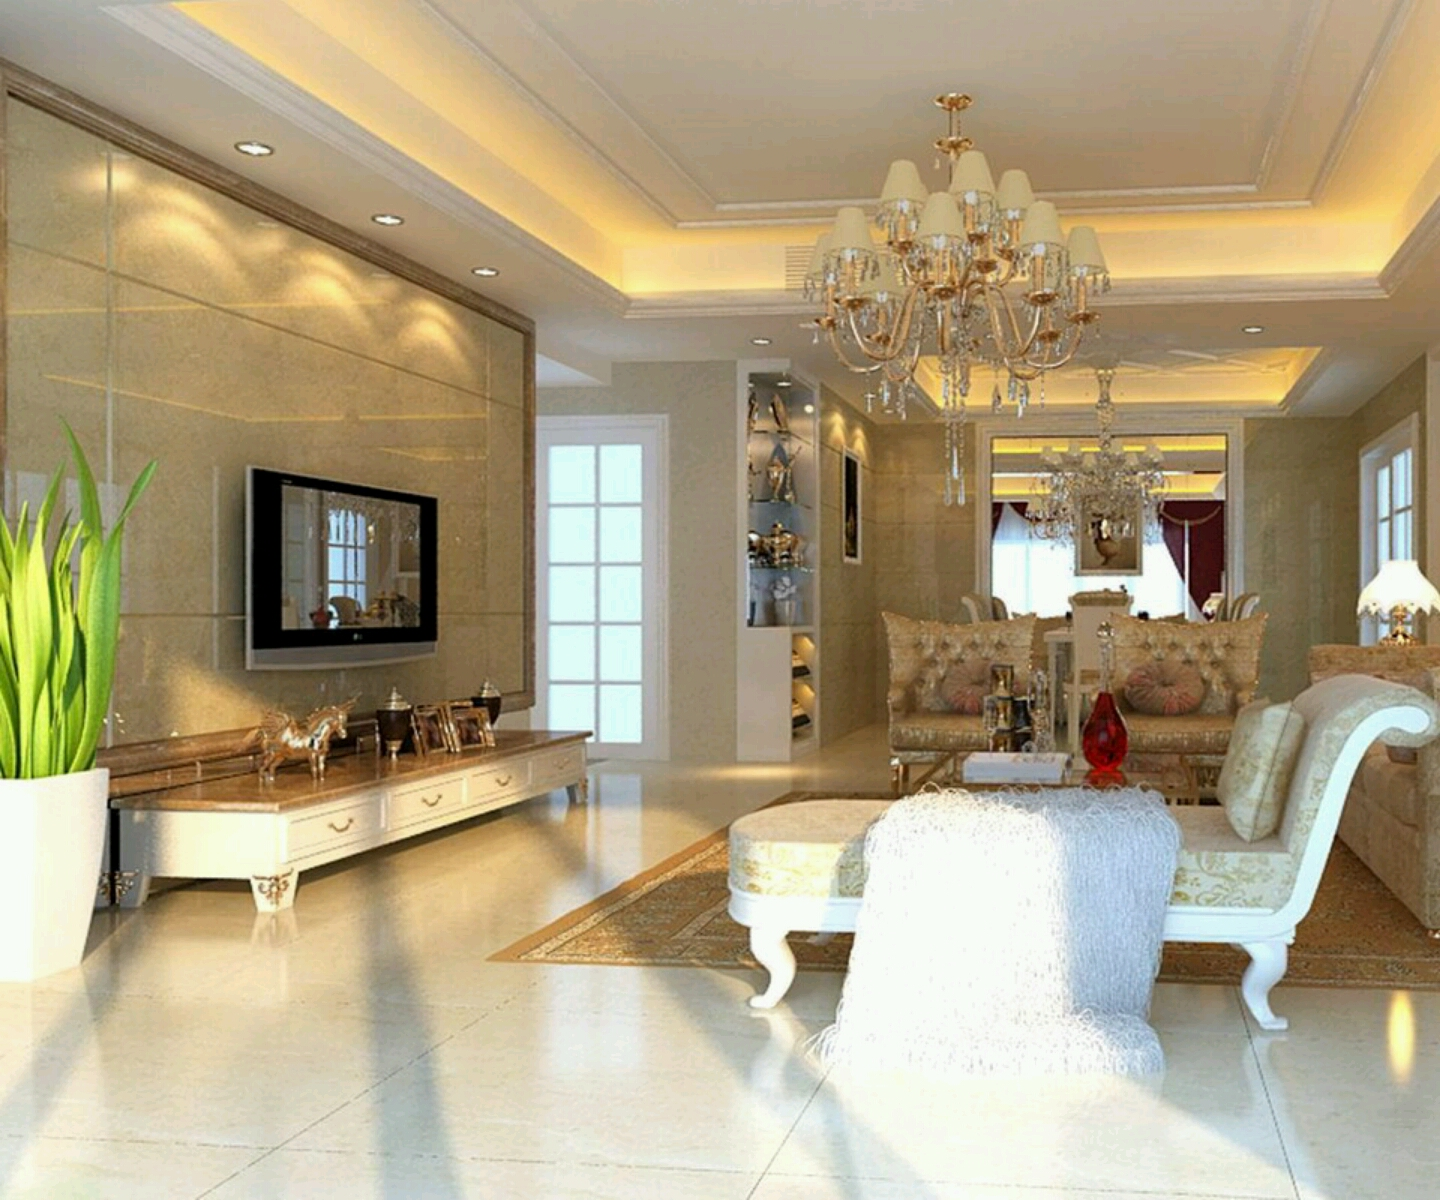 homes interior decoration living room designs ideas. | Modern Home